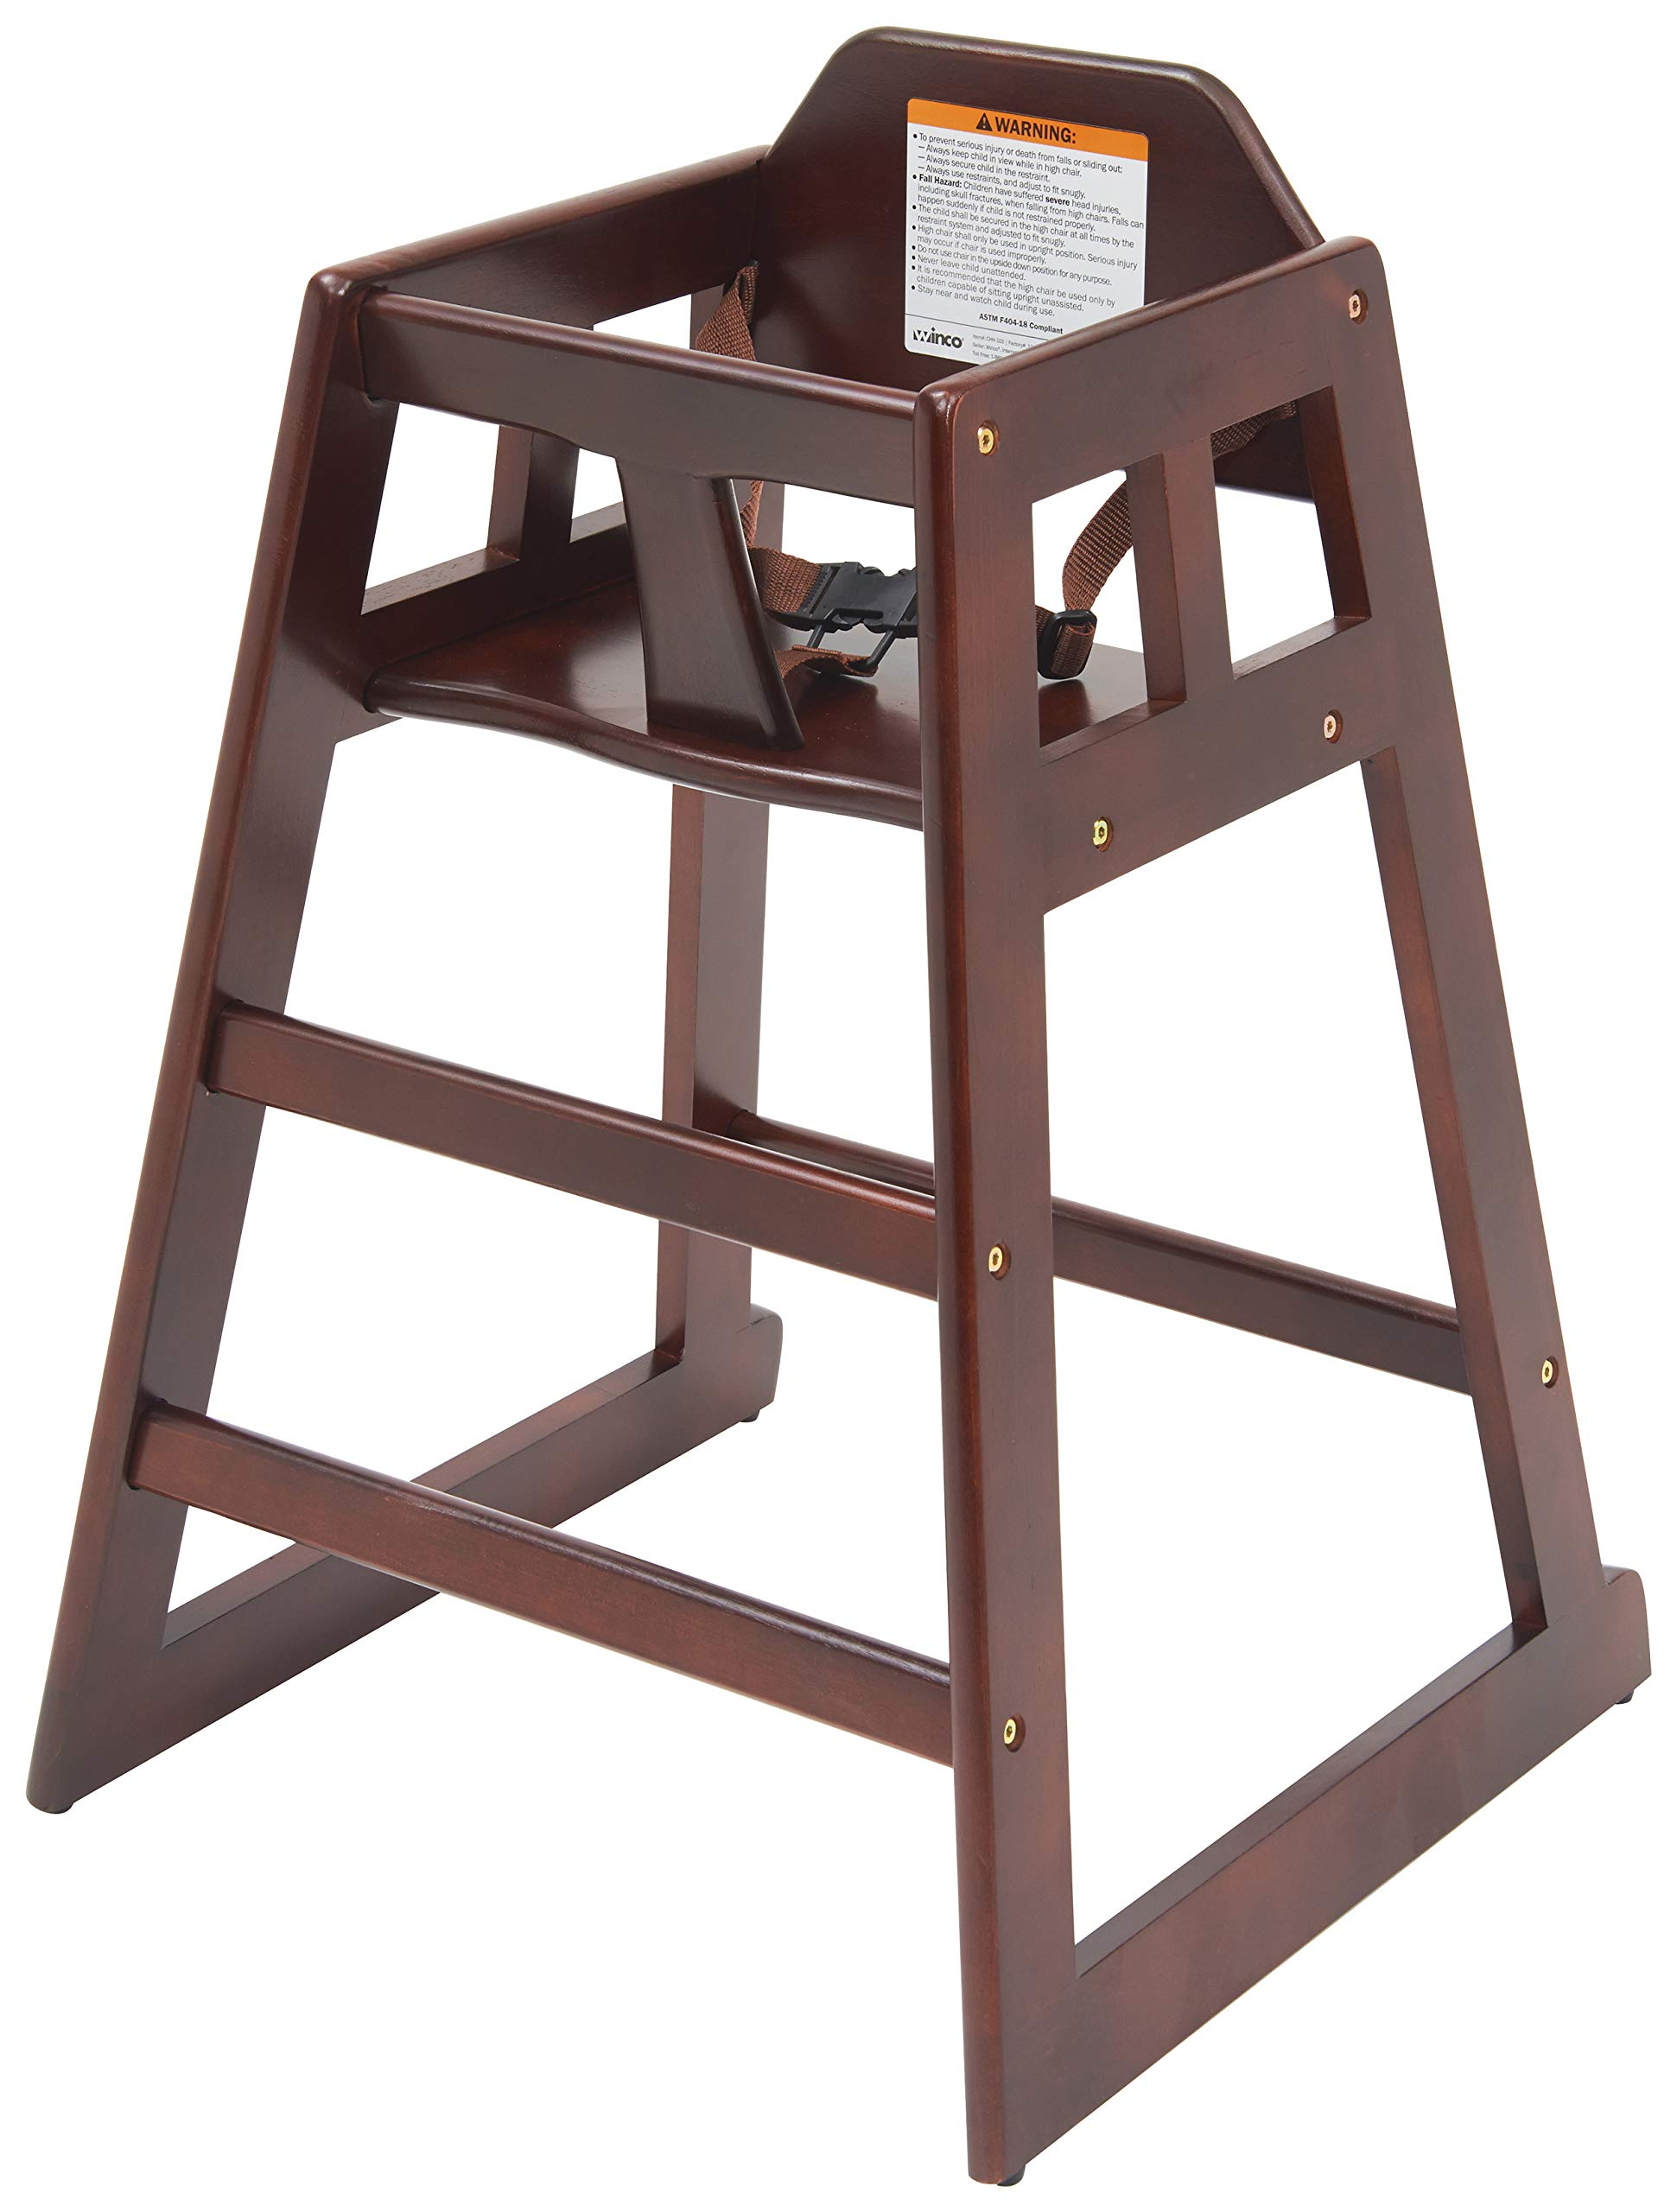 Winco CHH-103 Unassembled Wooden High Chair, Mahogany by Winco